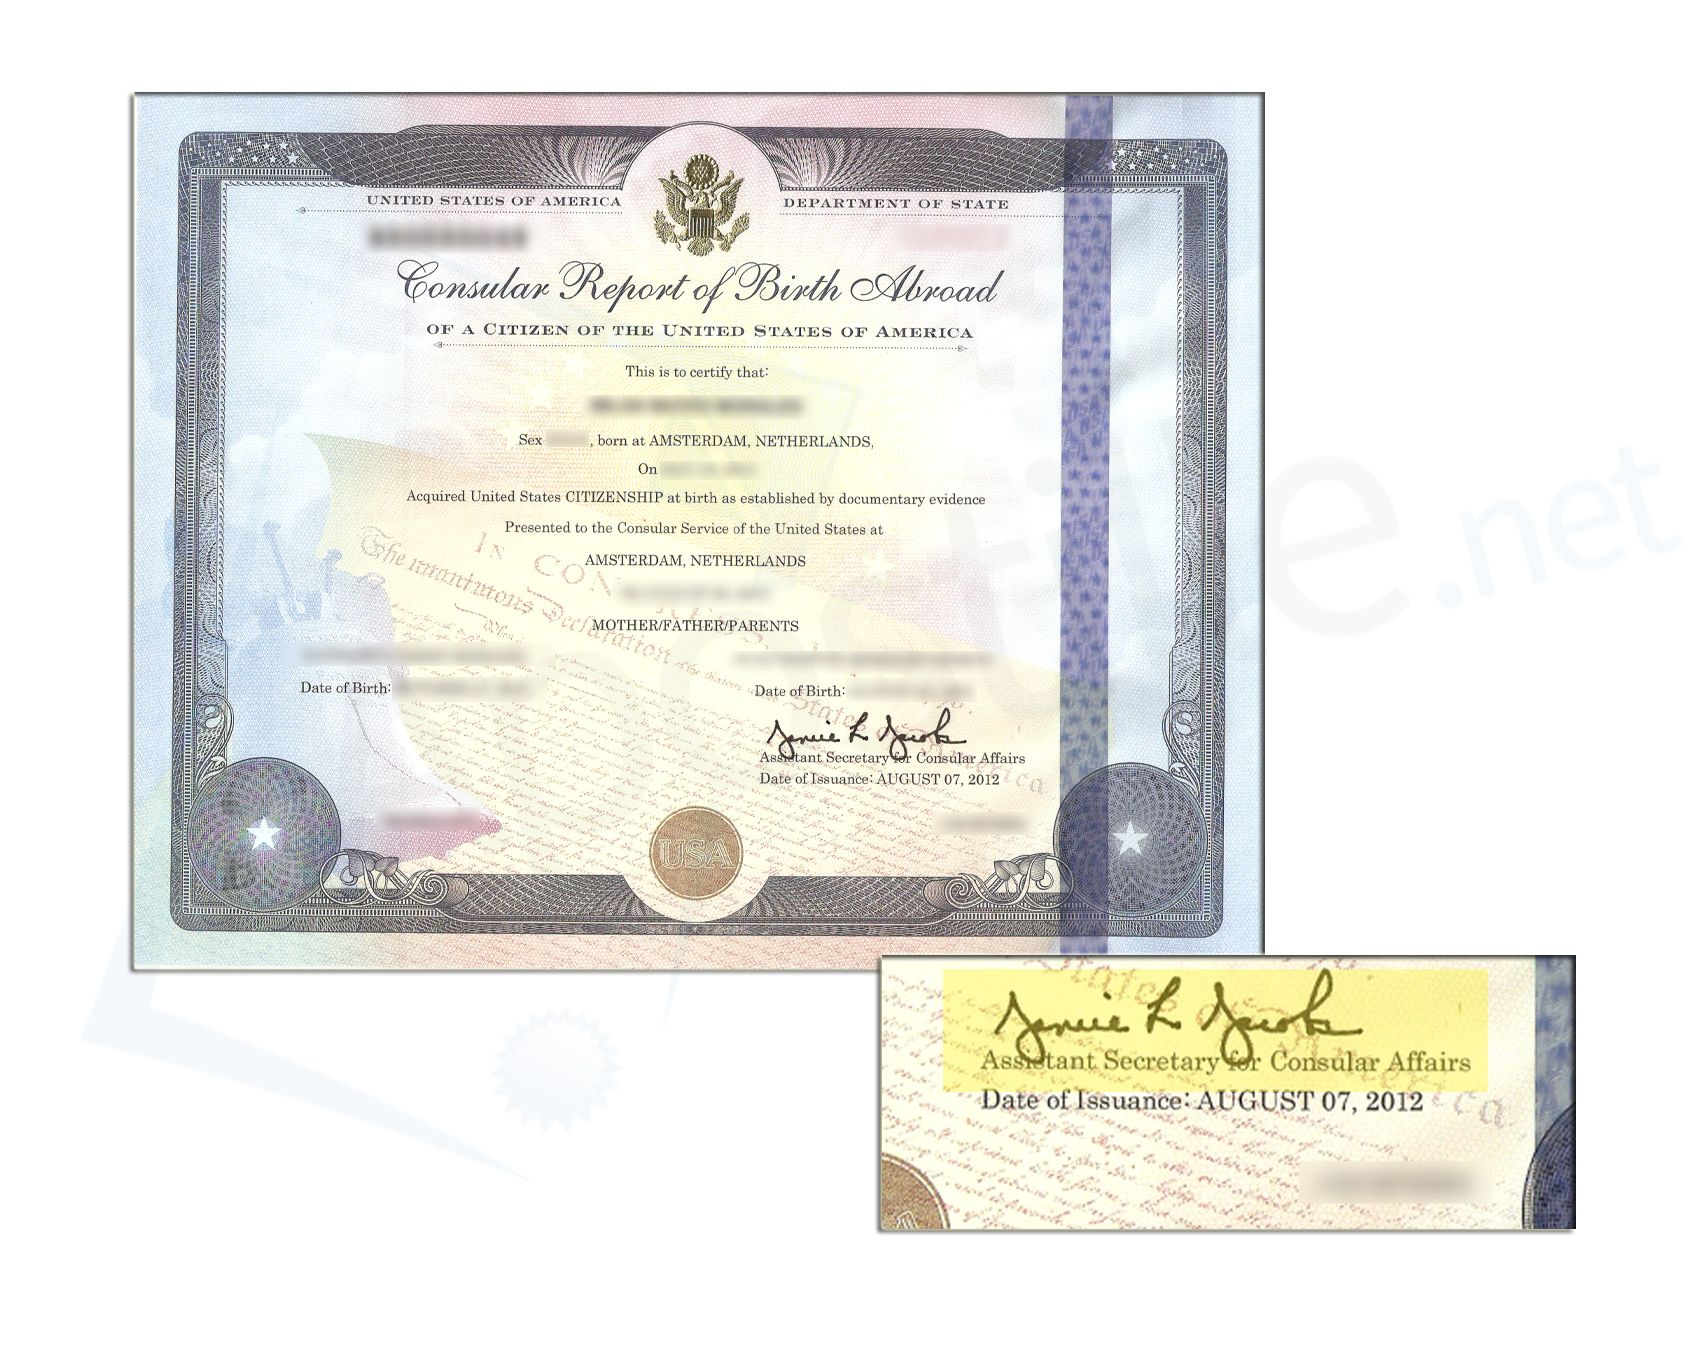 Consular Report Of Birth Certificate Signed By Assistant Secretary